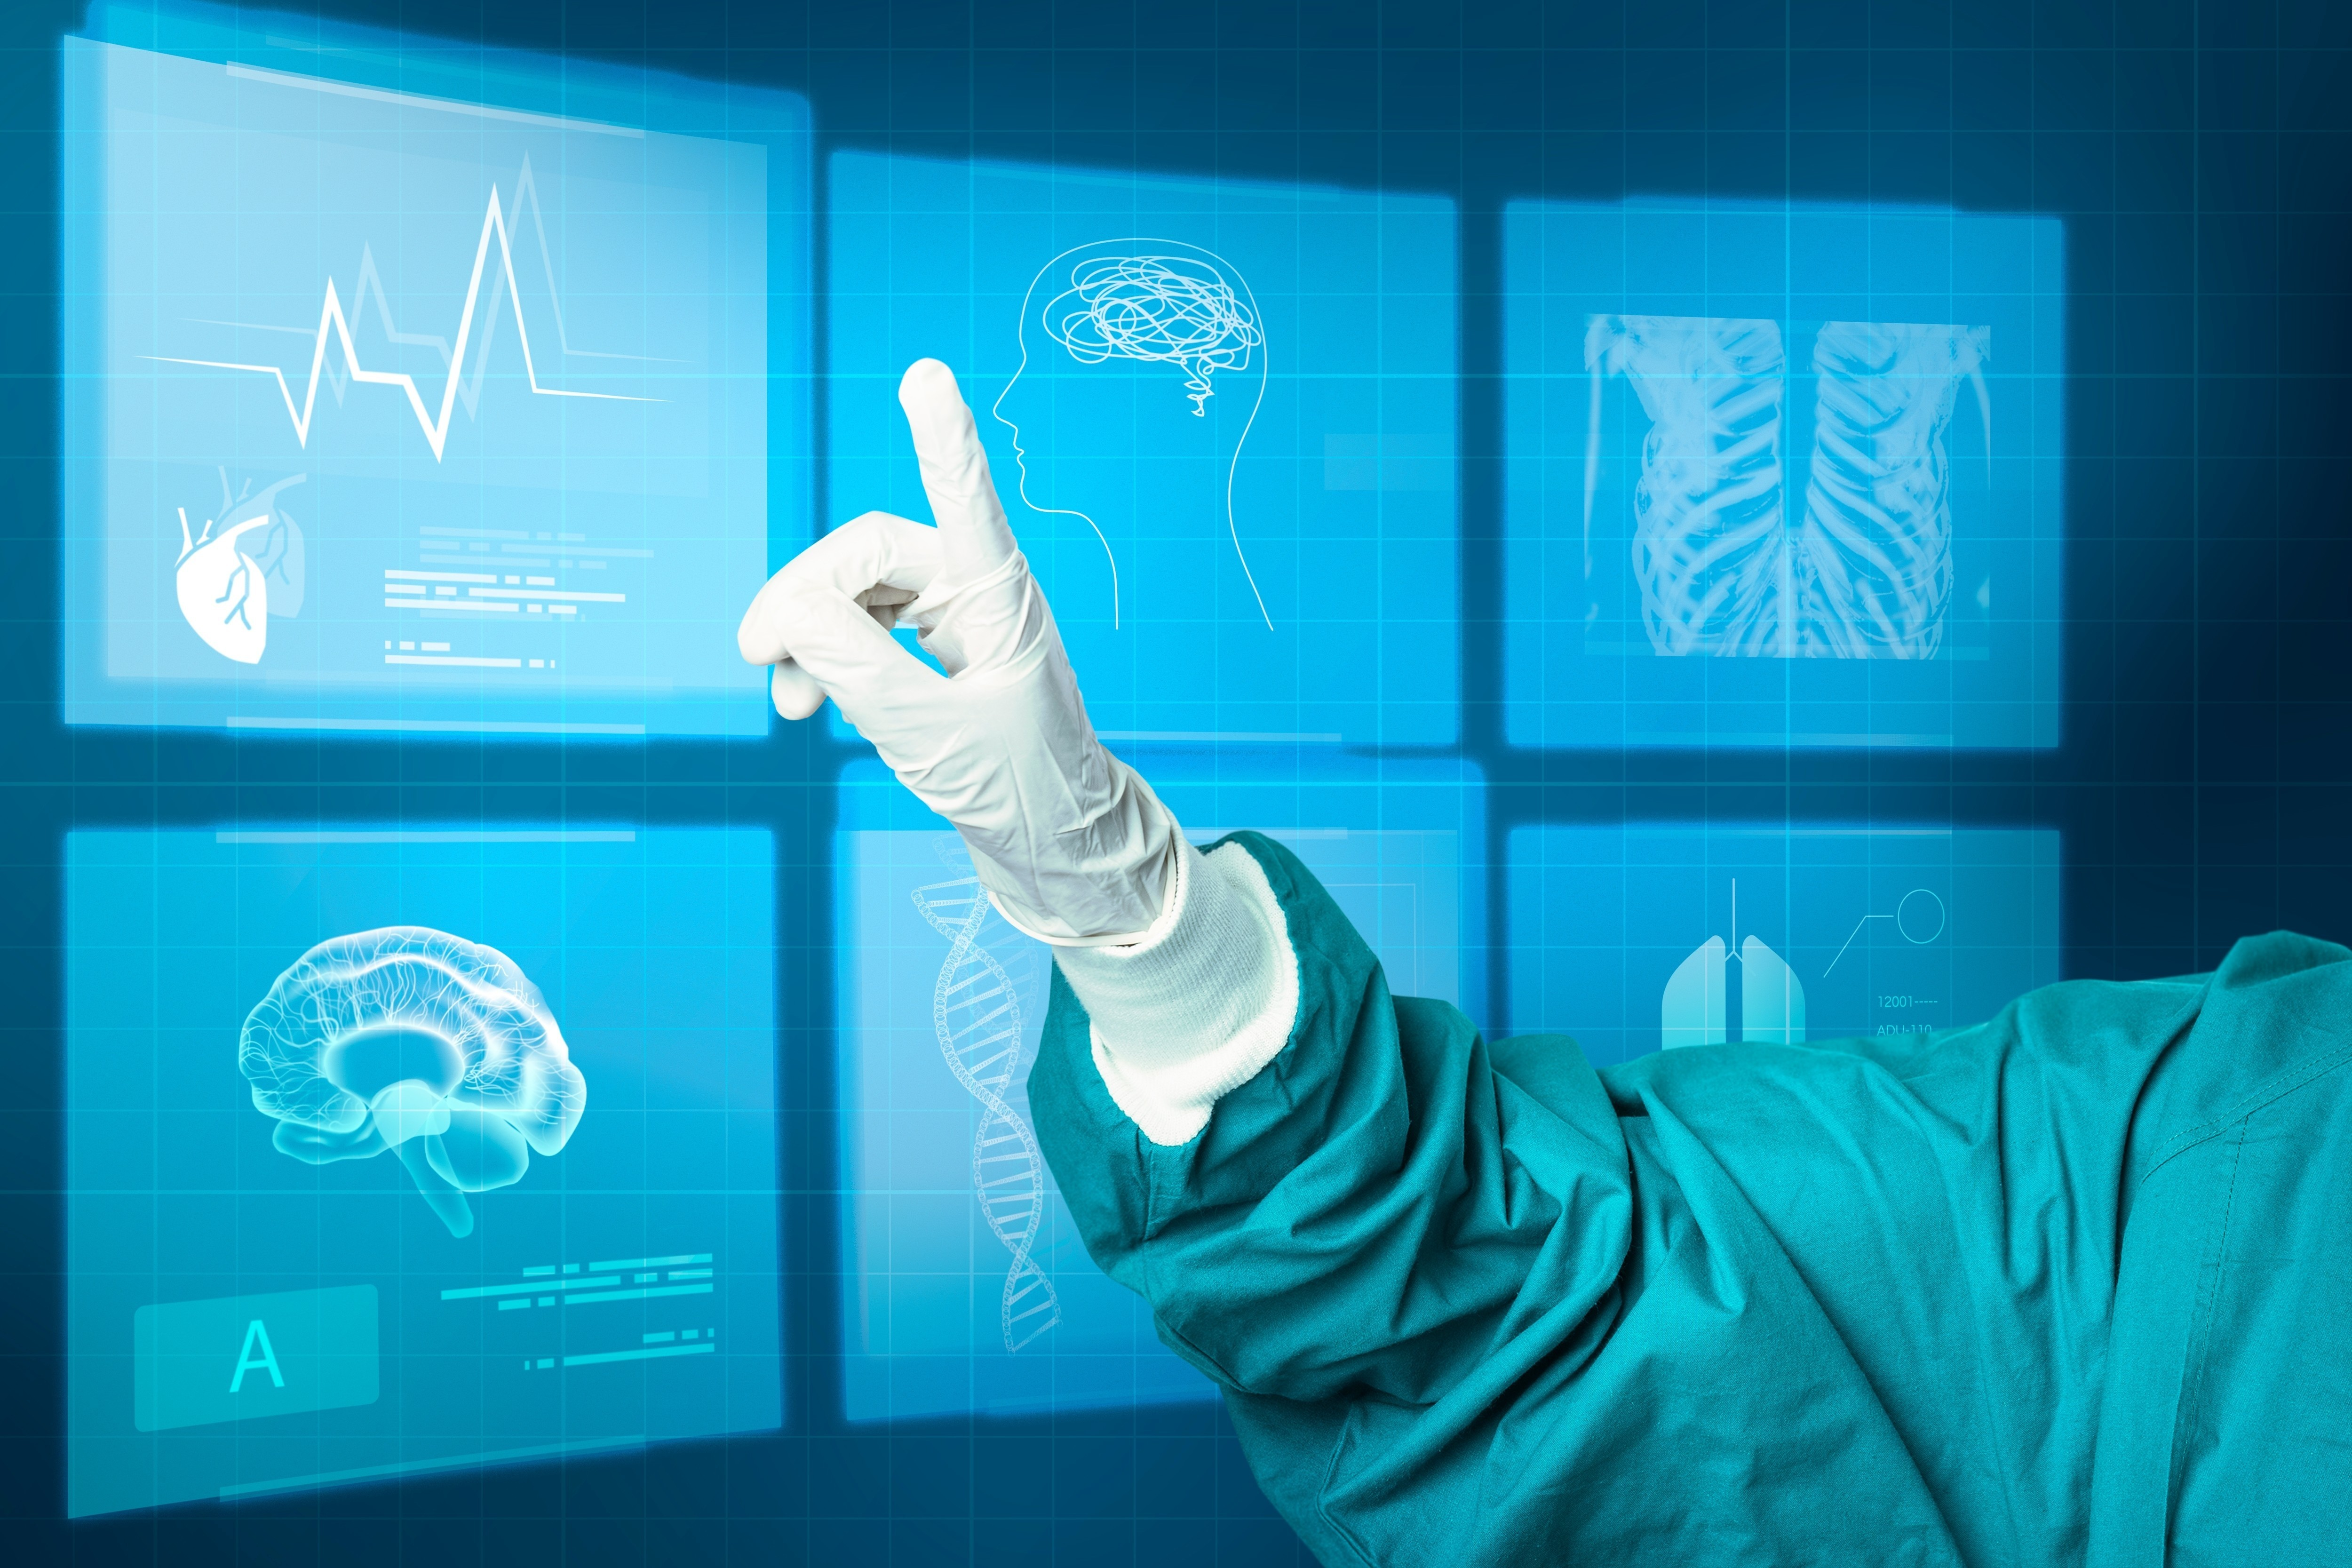 Digitalization in healthcare is expected to improve a broad range of health outcomes.